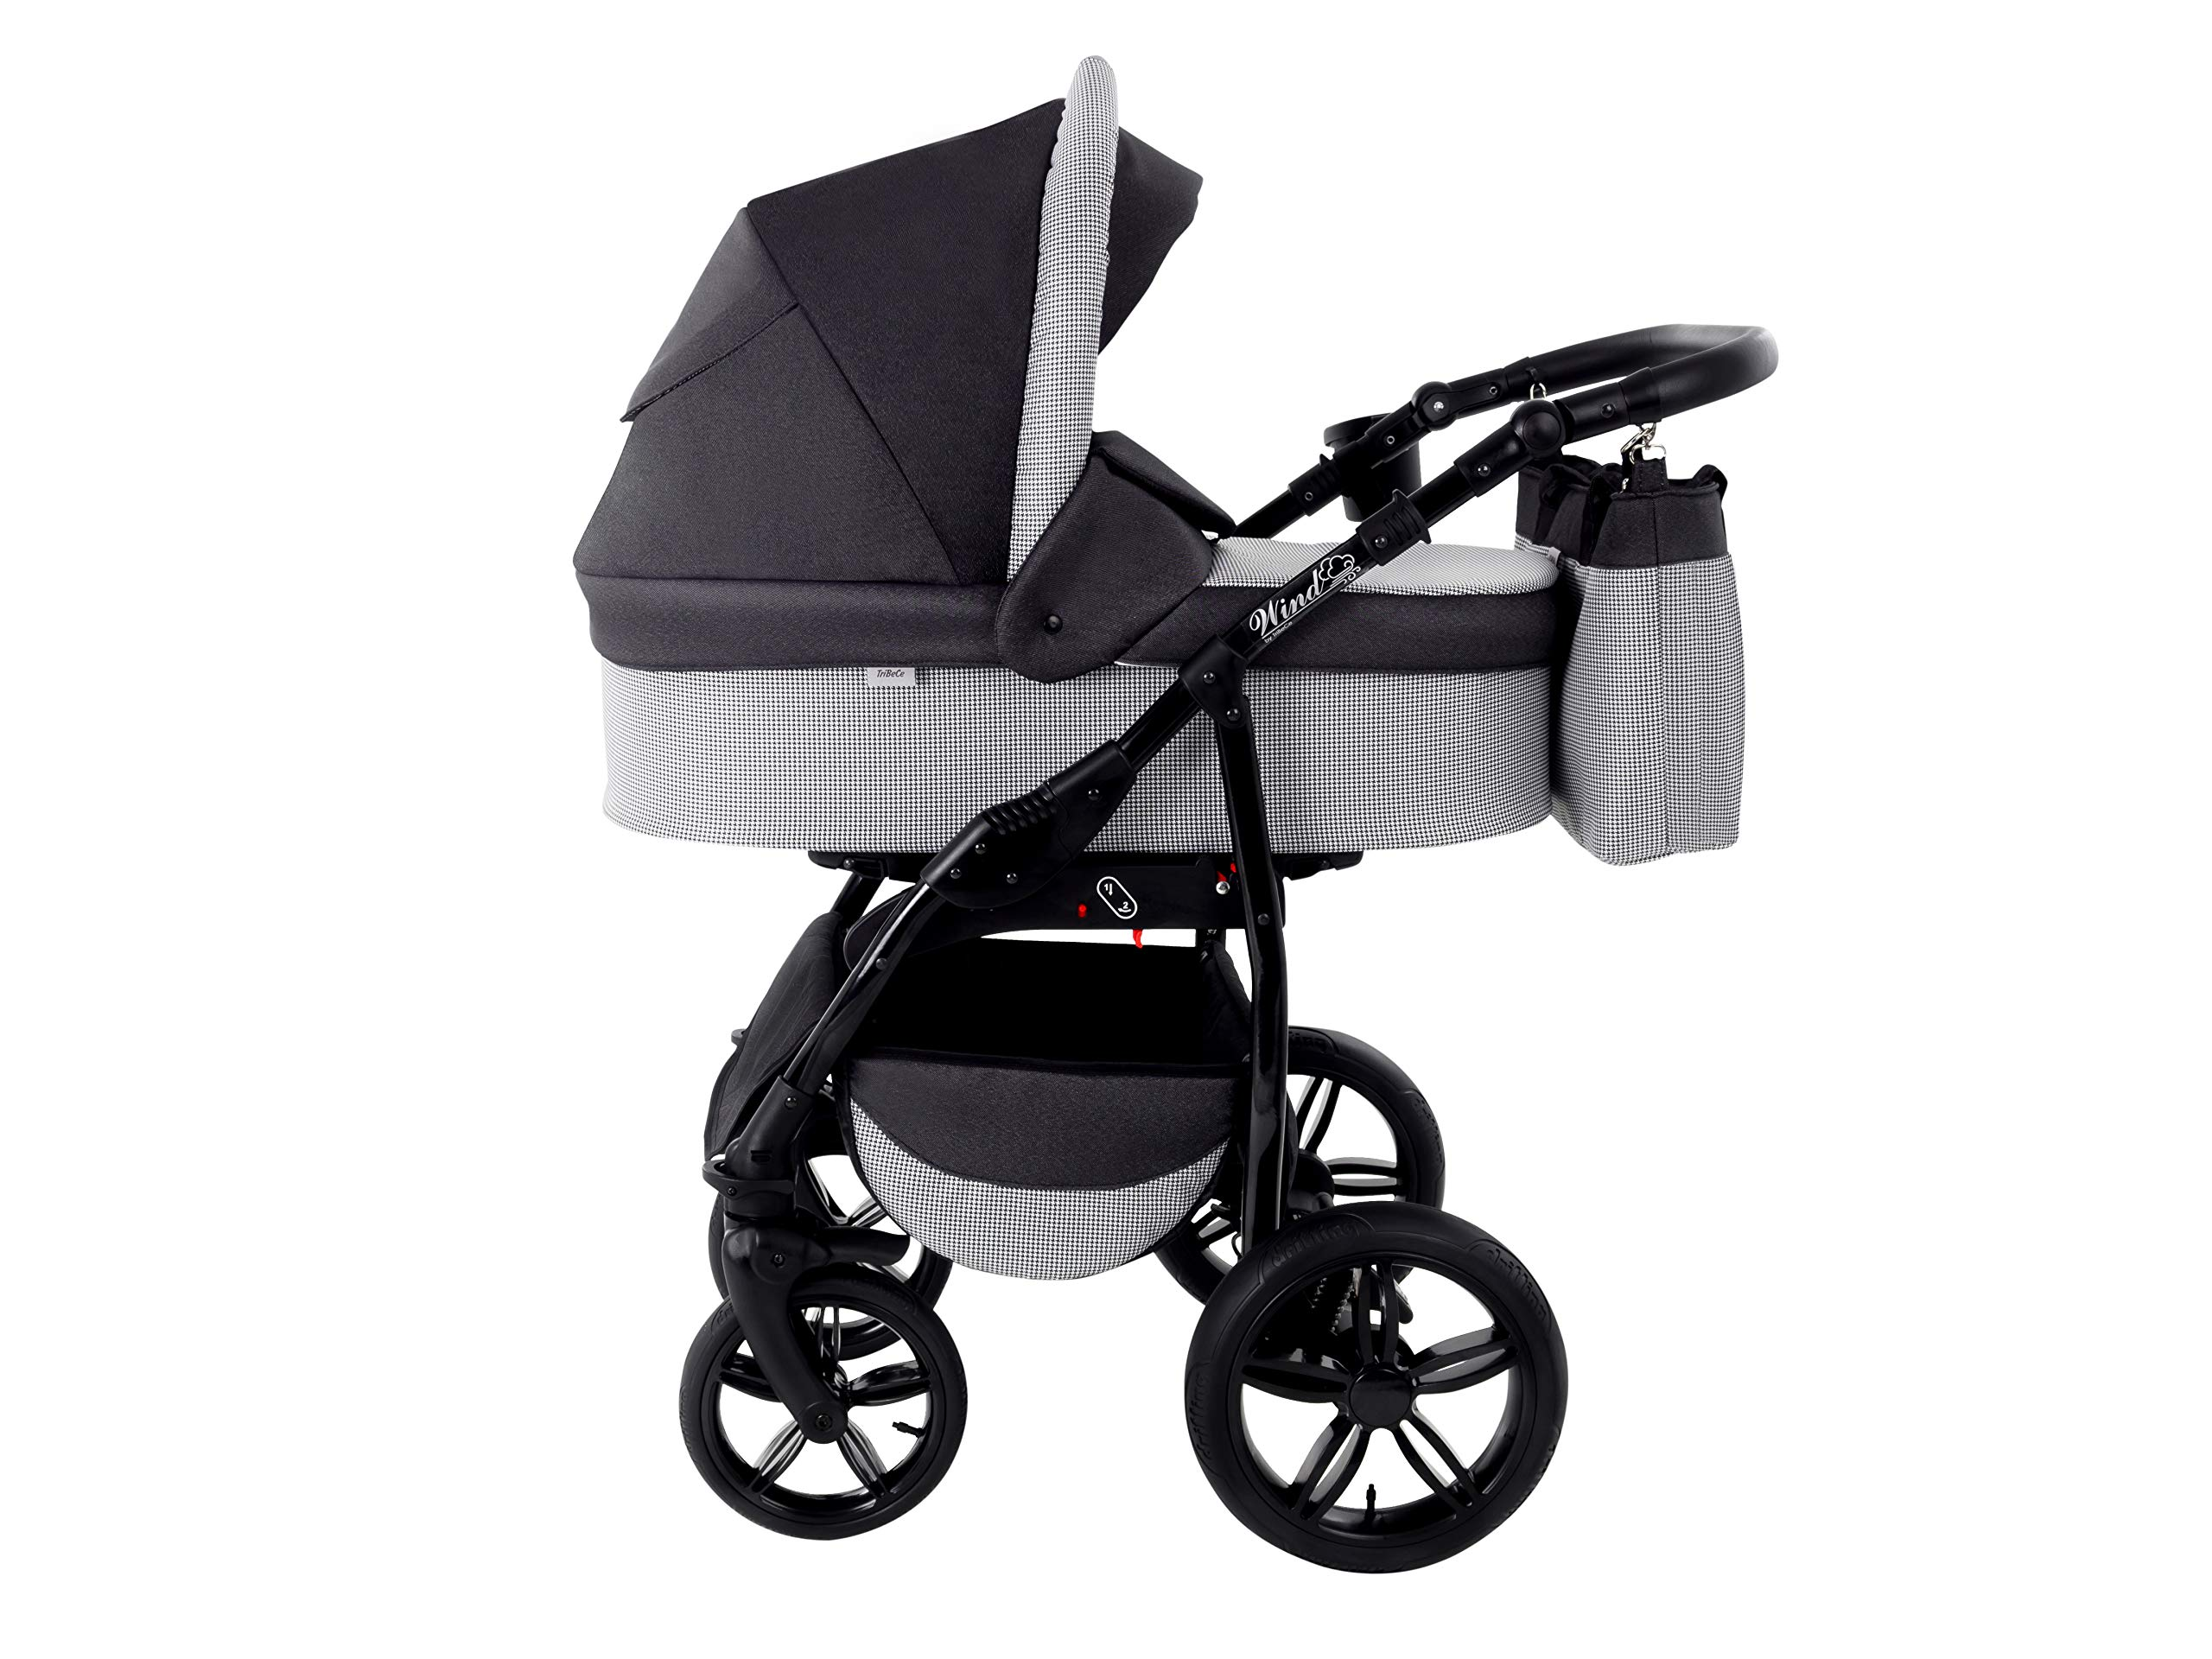 Baby Pram Zeo Wind 3in1 Set - All You Need! carrycot Gondola Buggy Sport Part Pushchair car seat (54) Zeo 3 in 1 combination stroller complete set, with reversible seat units to the buggy, child car seat or baby carriage The baby carriage is suitable for babies from 0 months to 3 years (0-15 kg) Has 360 ° swiveling wheels, four-fold suspension, four-stage backrest, five-position adjustable footrest and a five-point safety belt 3